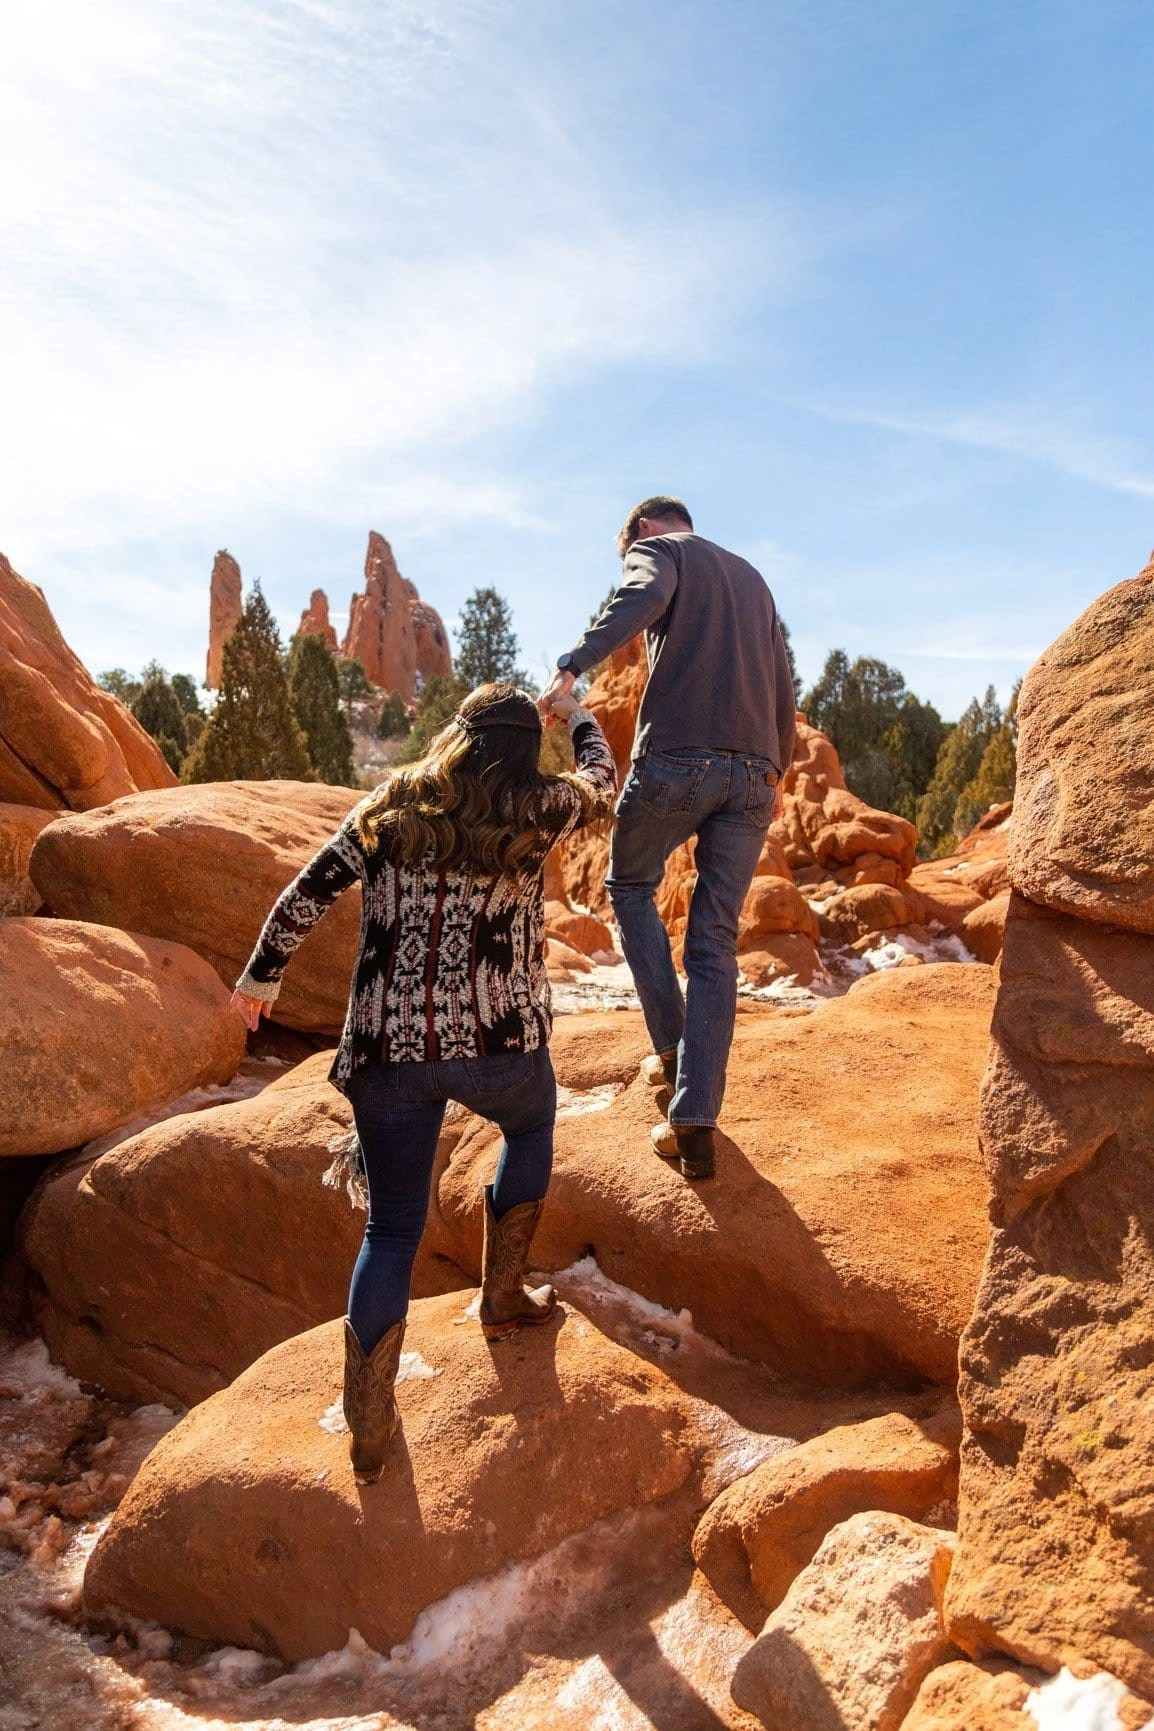 fiance leads his bride to be through the trails of Garden of the Gods during their adventure session. Trails are more fun when explored with those you love